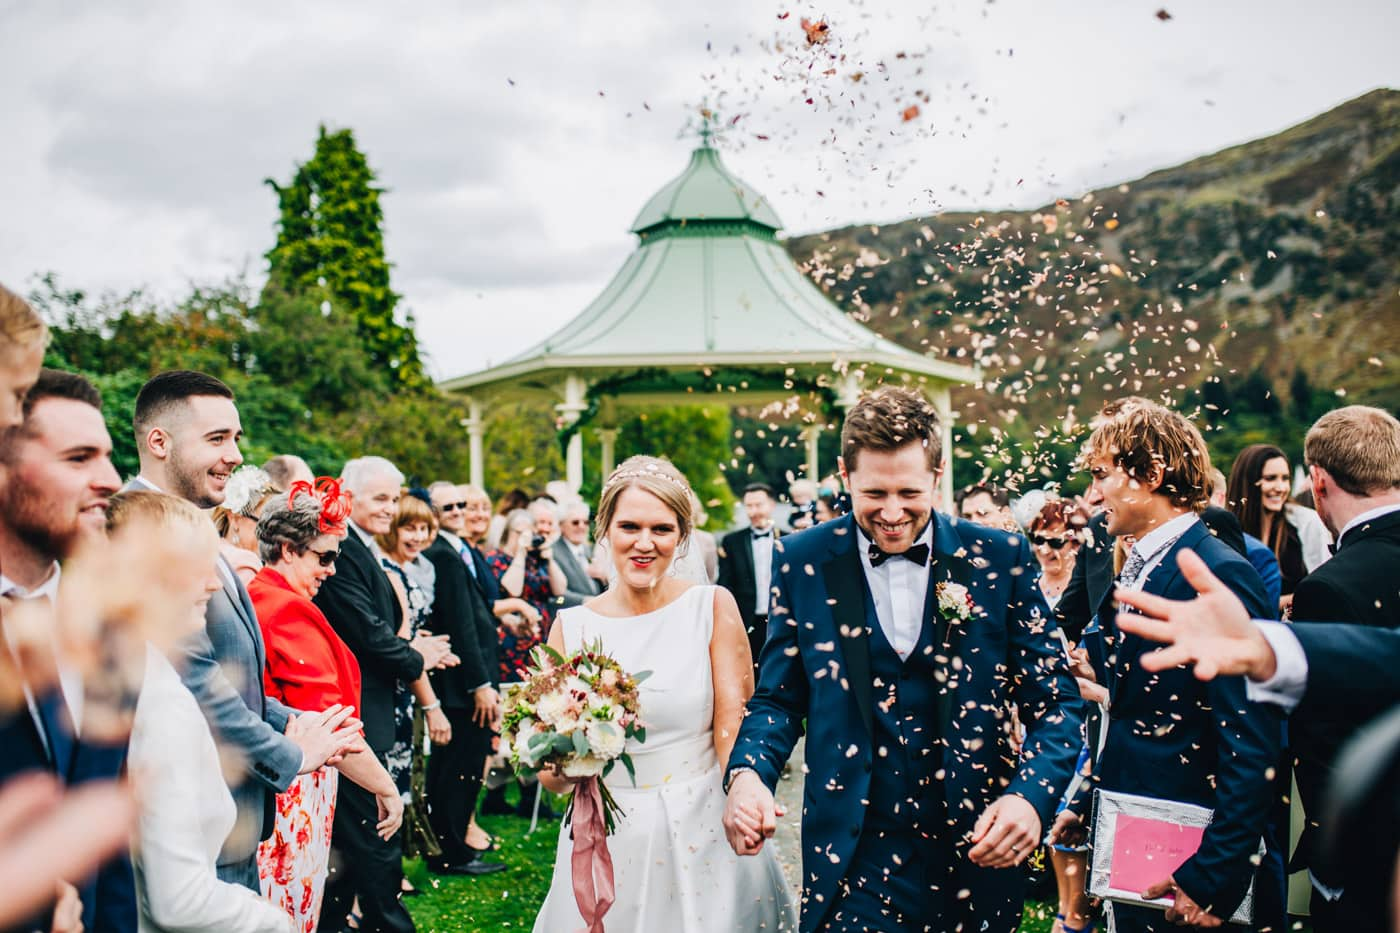 confetti - outdoor wedding ceremony